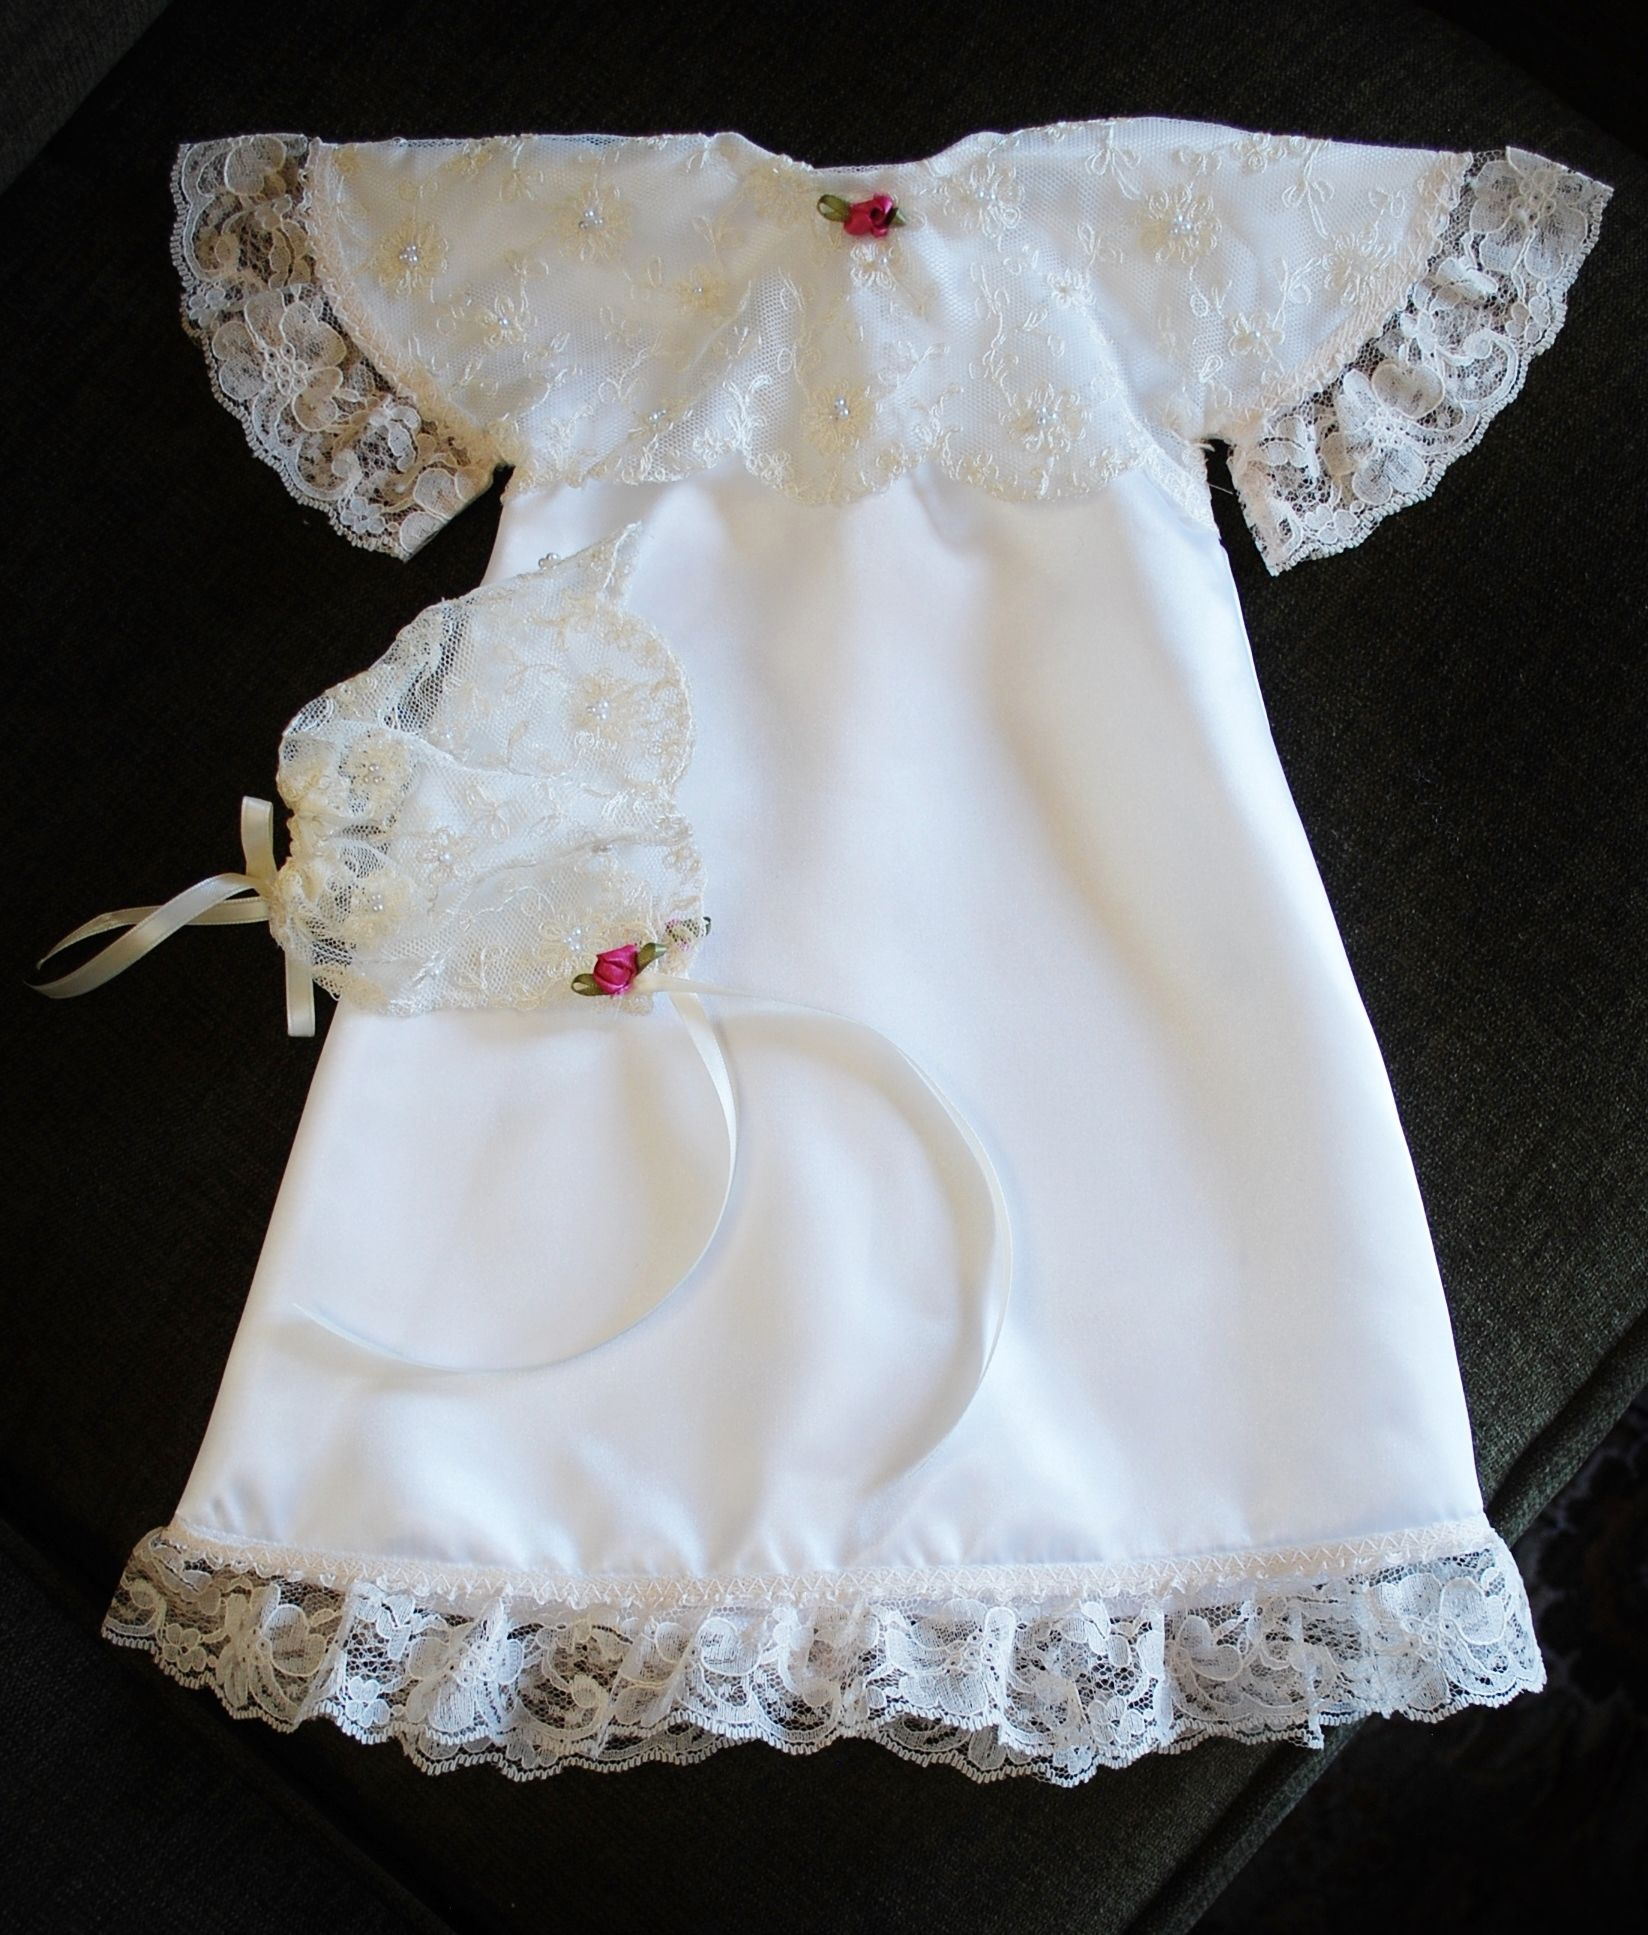 donated weddg dresses, infant burial gowns and wraps free of charge ...